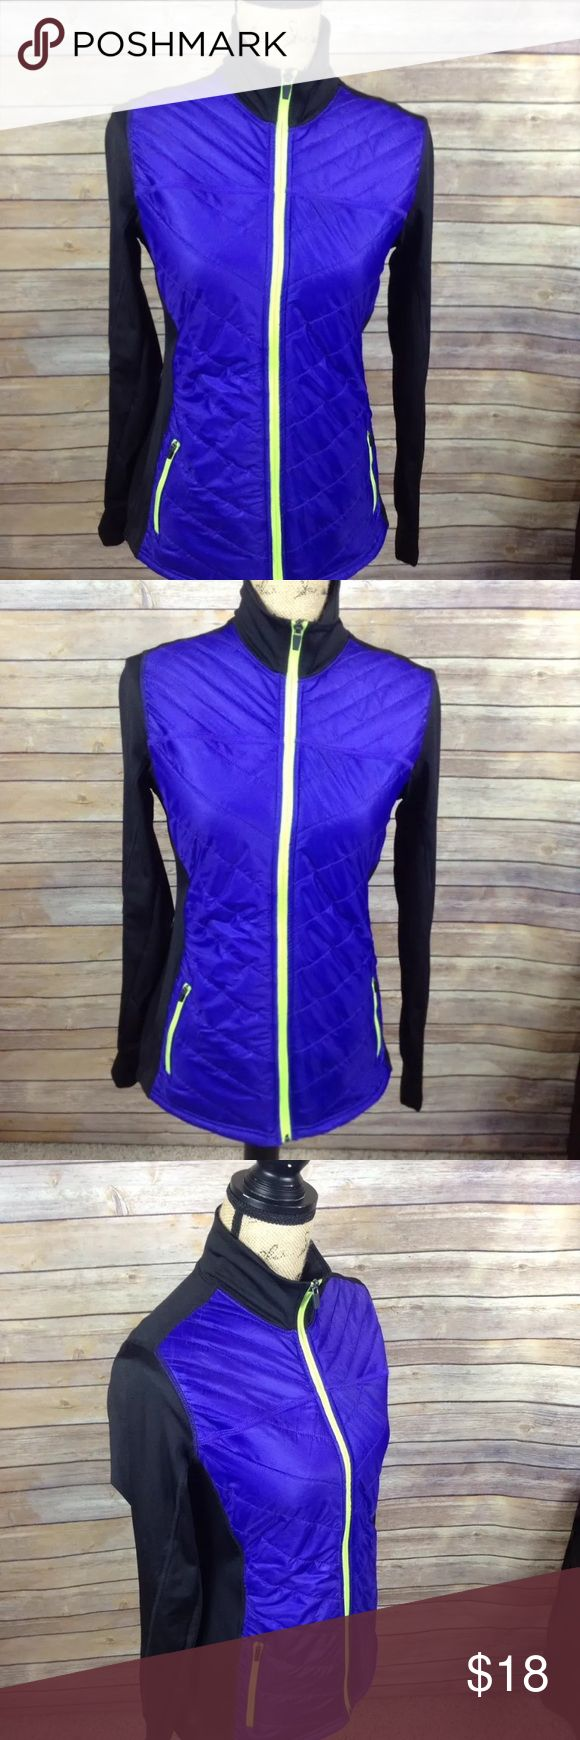 "Old Navy Active purple black athletic jacket Pre-owned Old Navy Active women's size small purple and black athletic fitness jacket. Excellent used condition. No rips holes or stains. 100% polyester. Looks blue in the pictures but it is definitely purple. Two front zipper pockets. Super cute!  Measurements: Armpit to armpit- 18"" Armpit to sleeve- 22"" Length- 26""  I ship fast! Pay before 4:30pm Monday thru Friday and I will ship the same day! Thank you for looking! Check out my other items…"